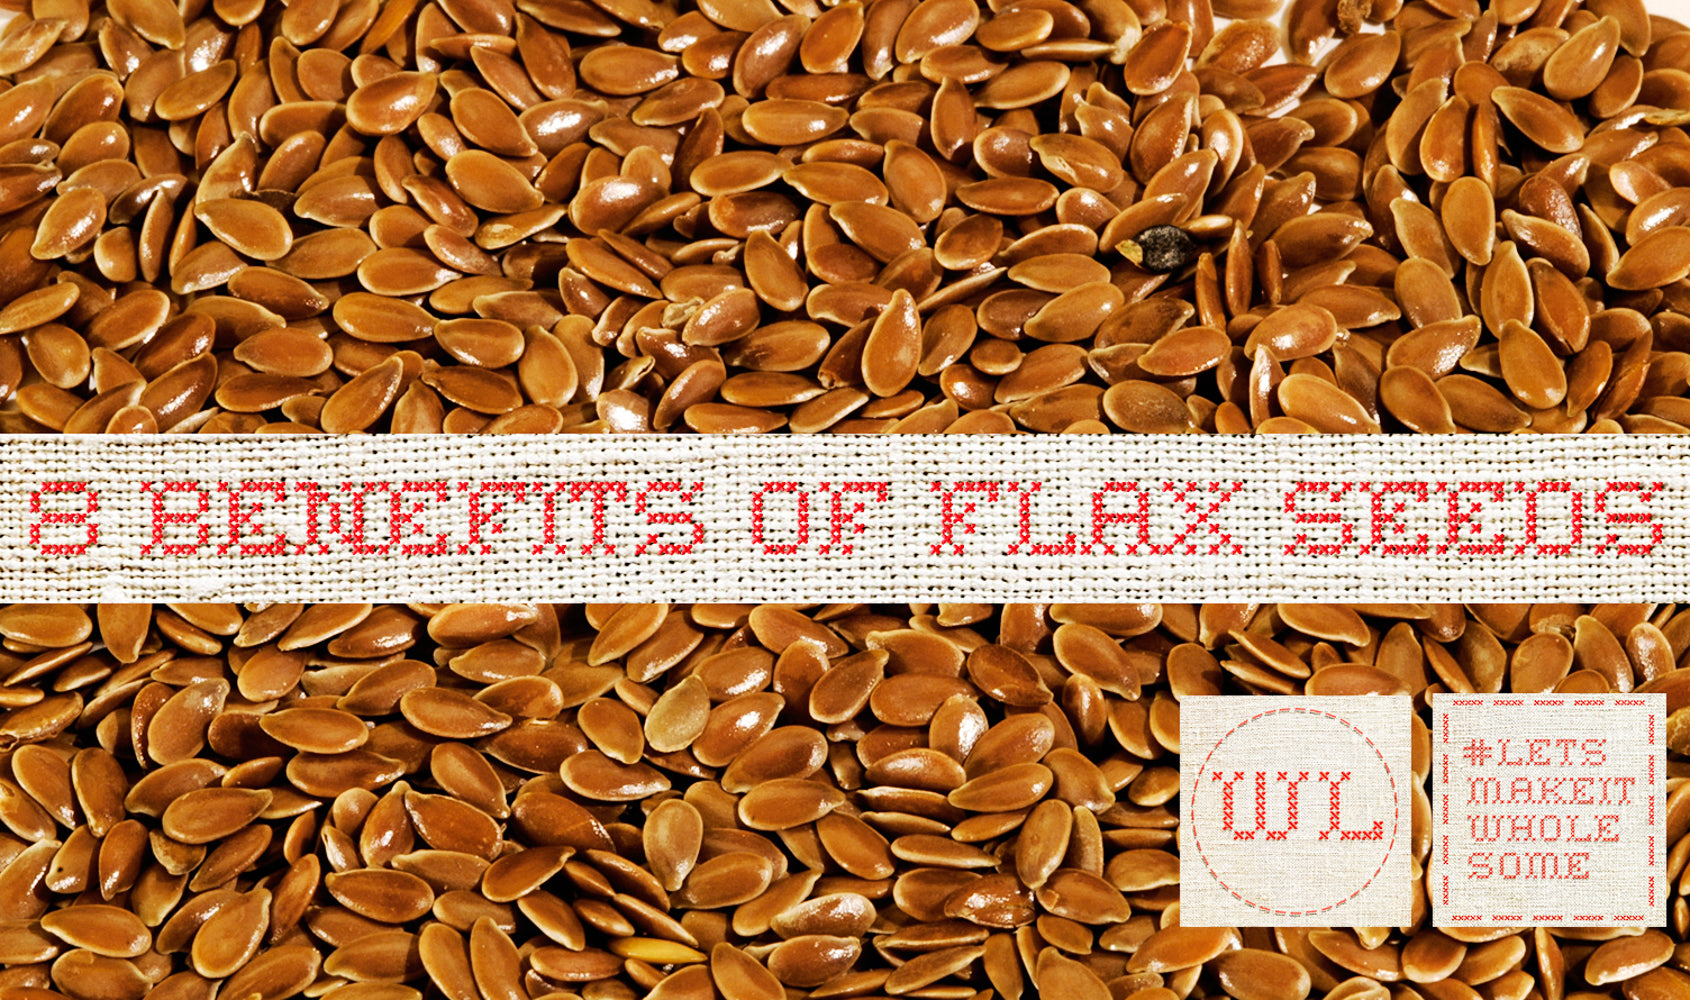 8 Wholesome Benefits of Eating Flax Seeds